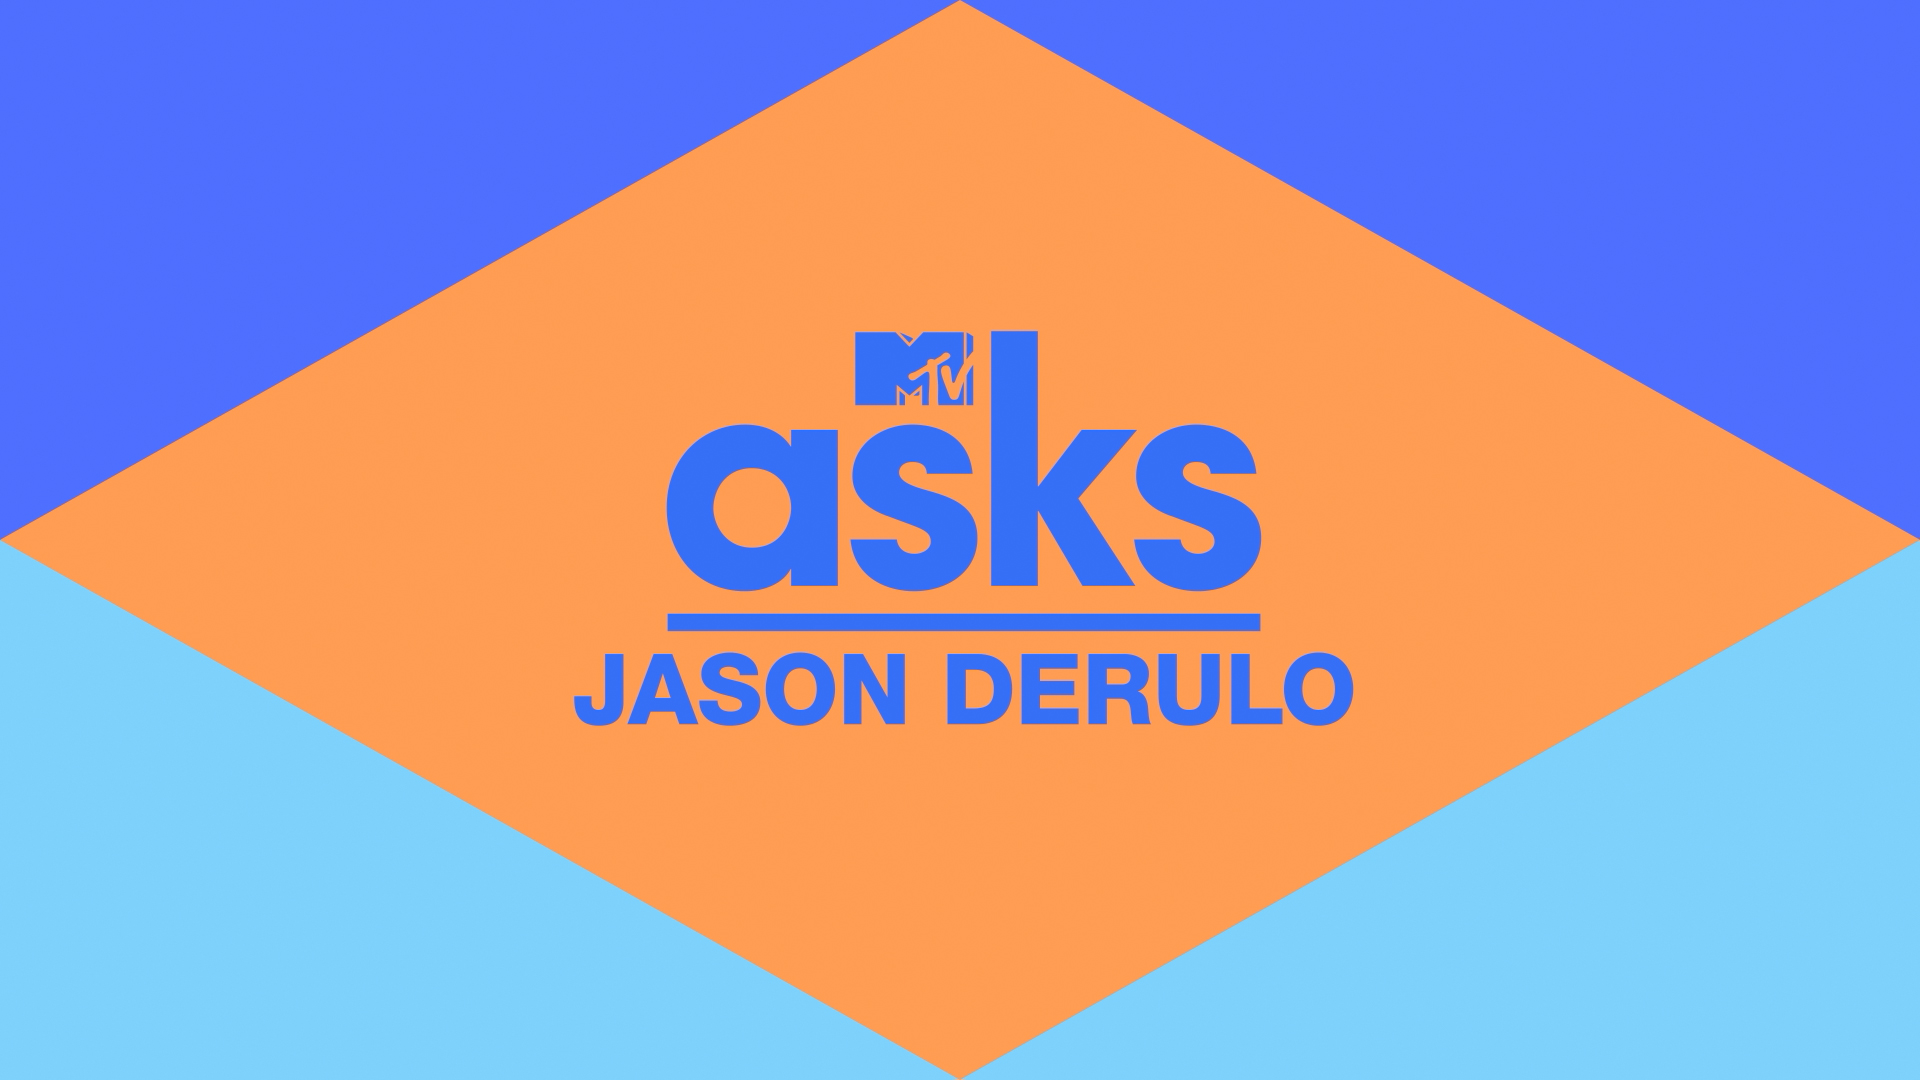 MTV Asks - TV show rebrand